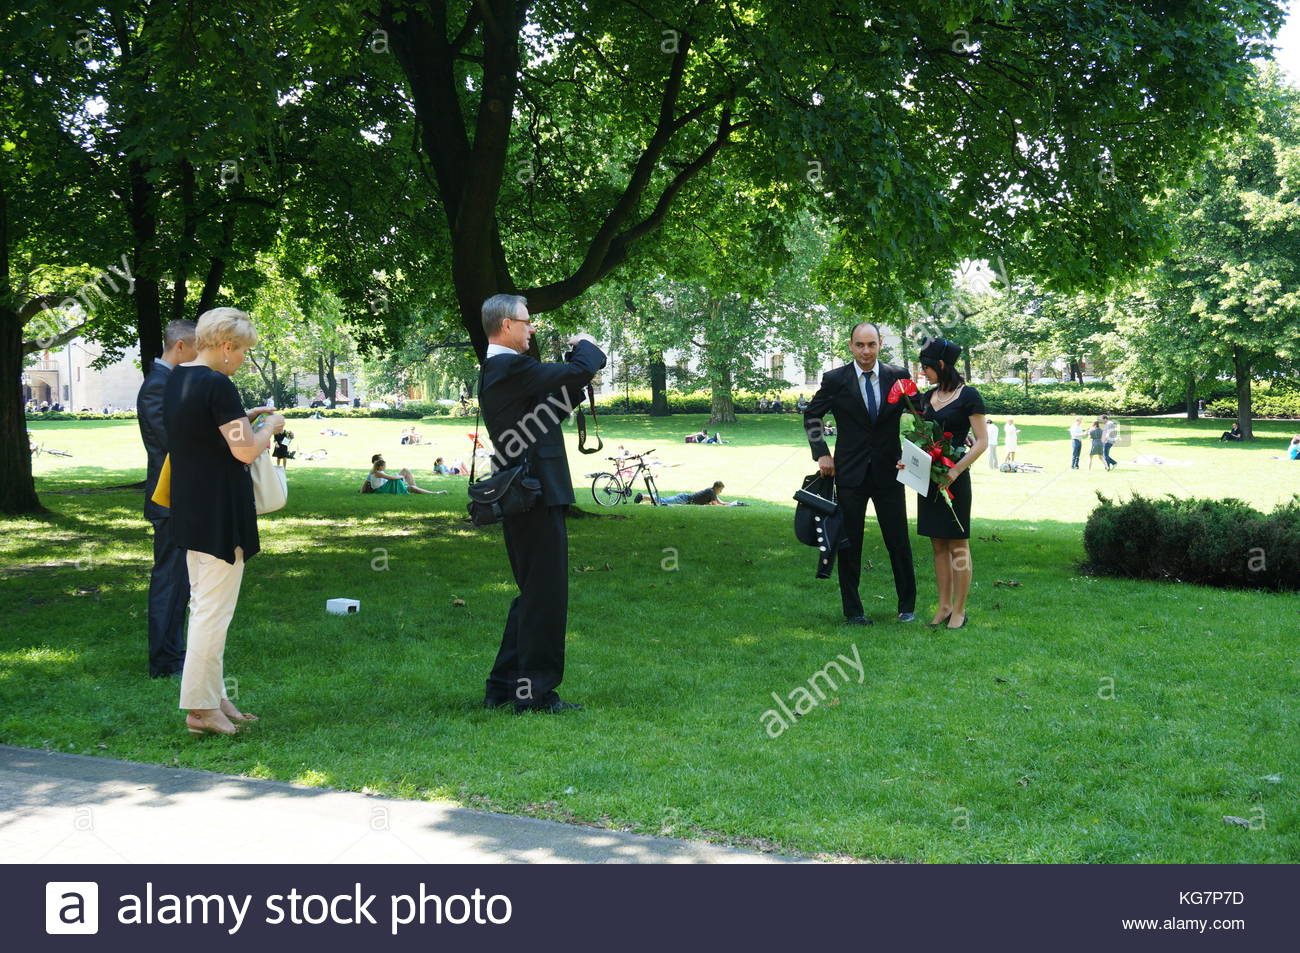 POZNAN, POLAND - JUNE 09, 2013: Parents making images of their graduated daughter at a park in the center of Poznan, - Stock Image